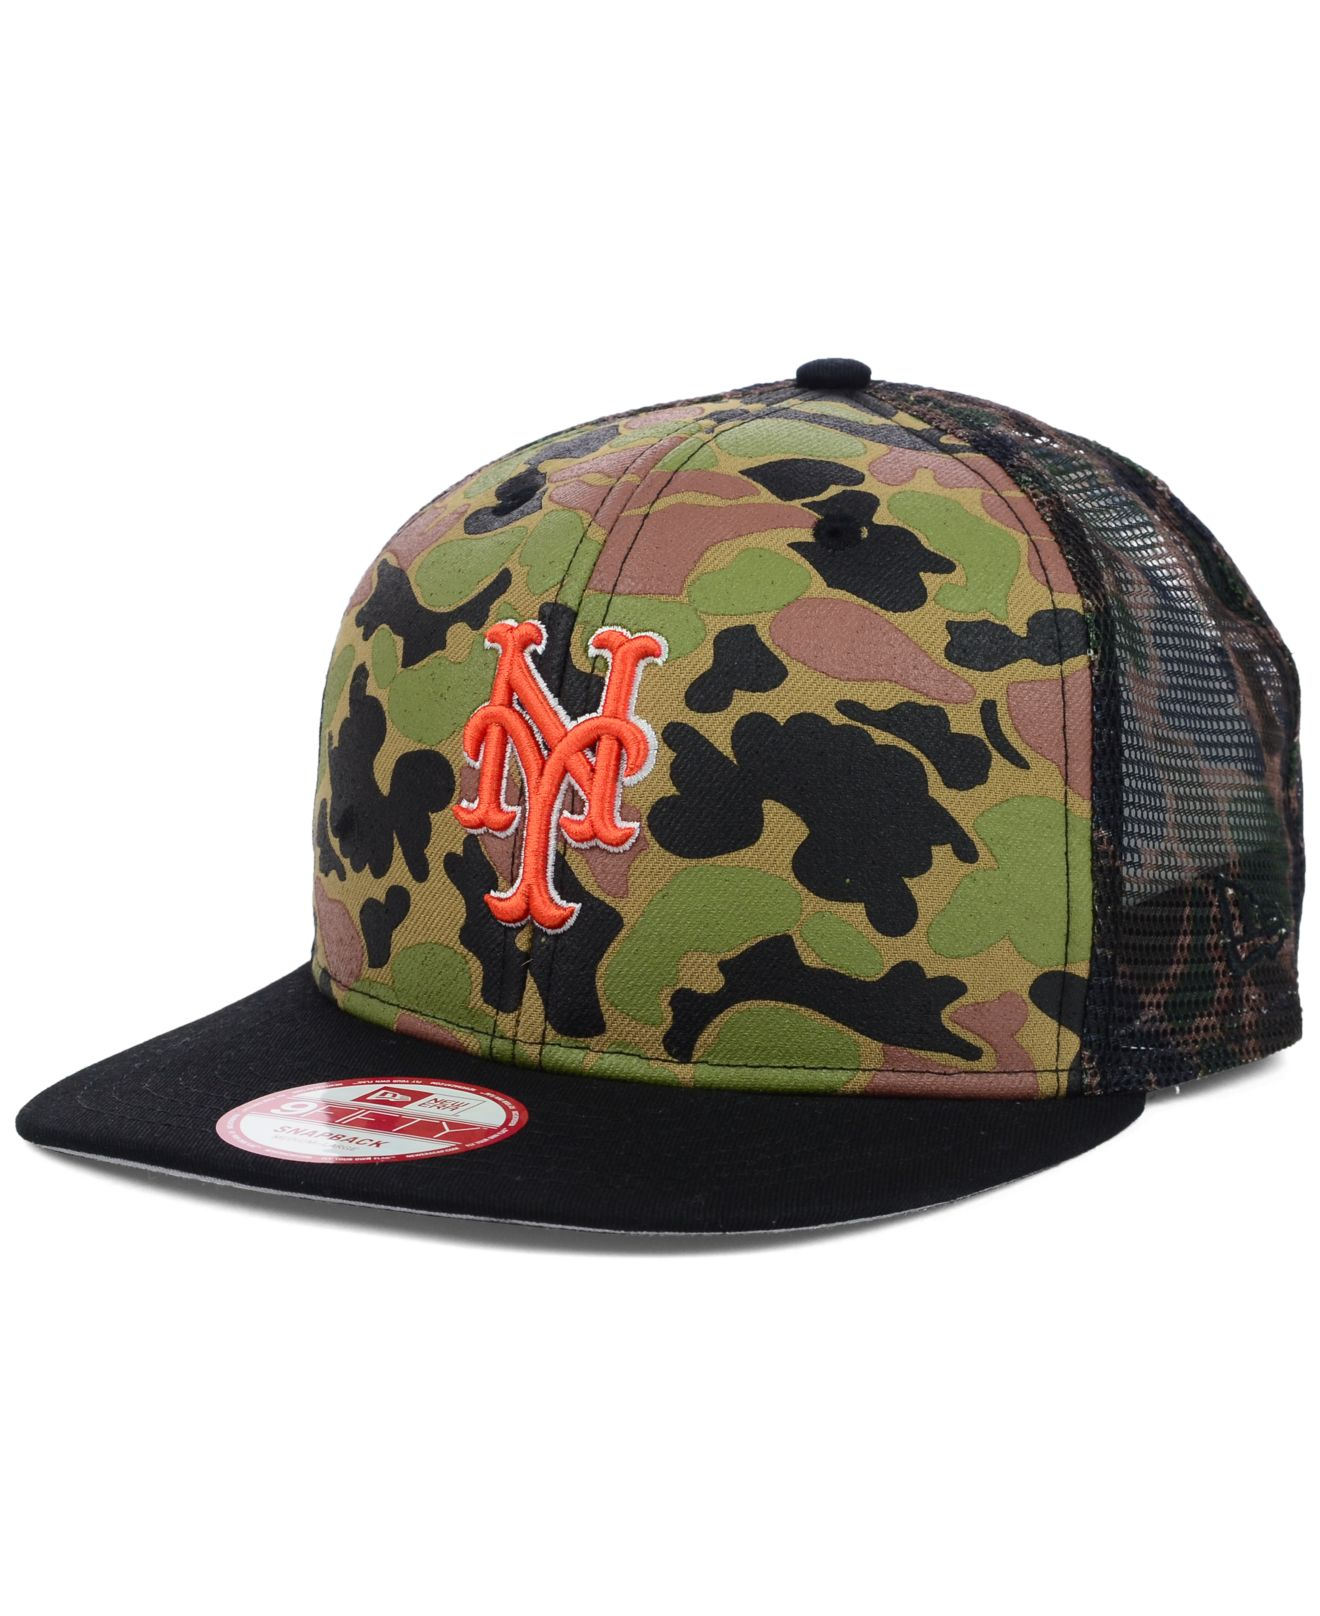 finest selection facac 65fd4 KTZ New York Mets Camo Face Mesh Trucker 9fifty Snapback Cap in ...